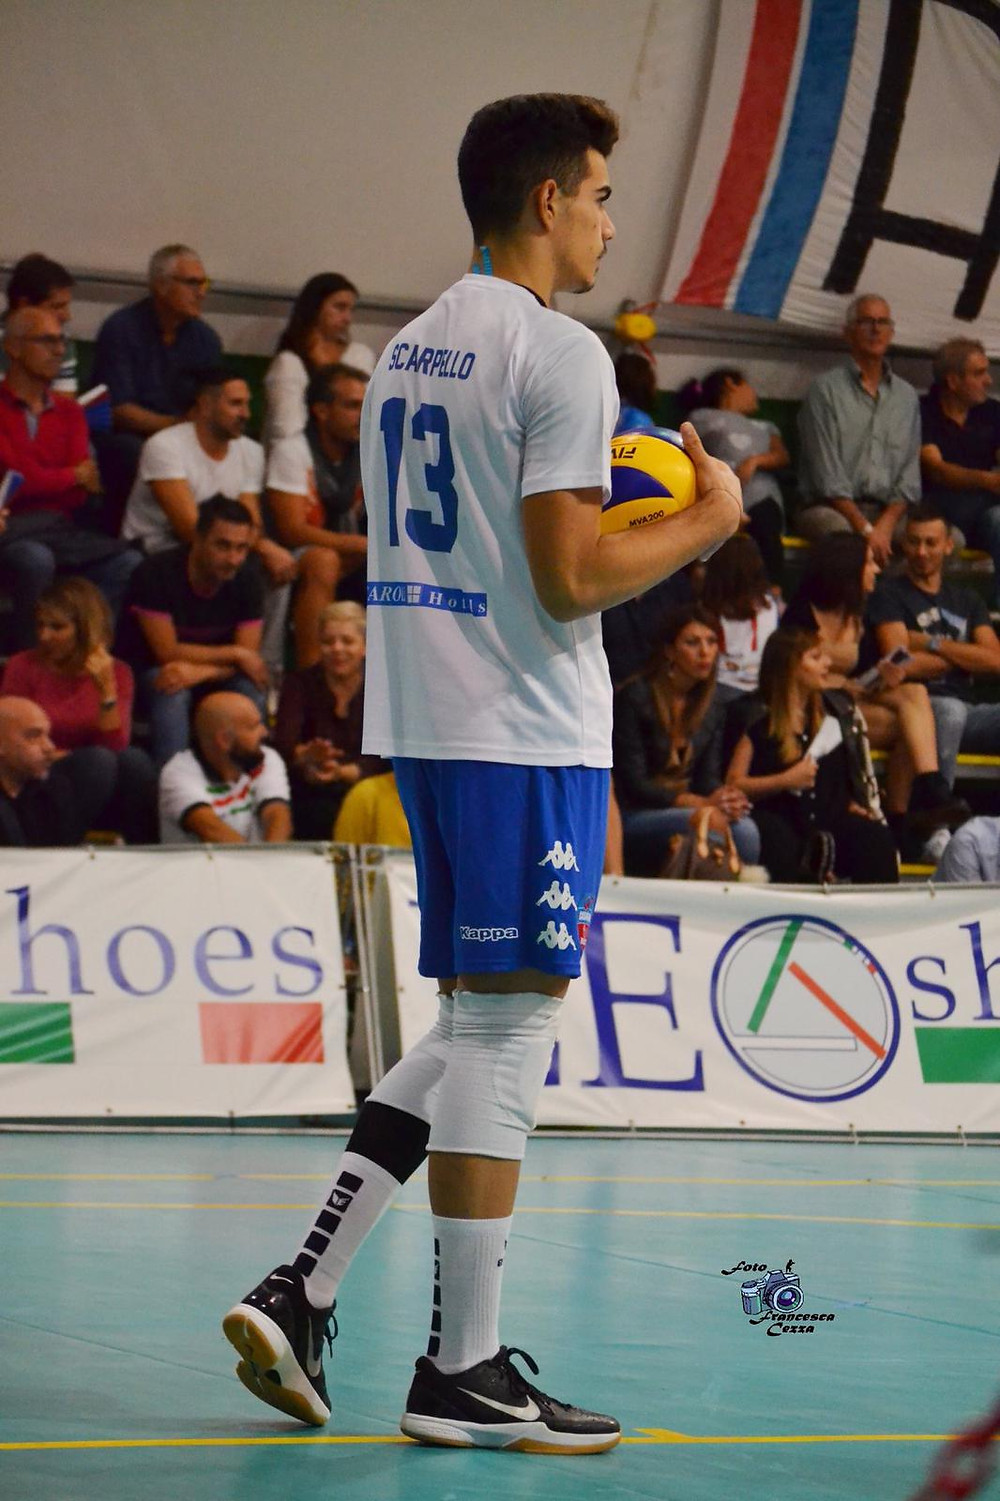 Damiano Scarpello Leo Shoes Casarano Volley